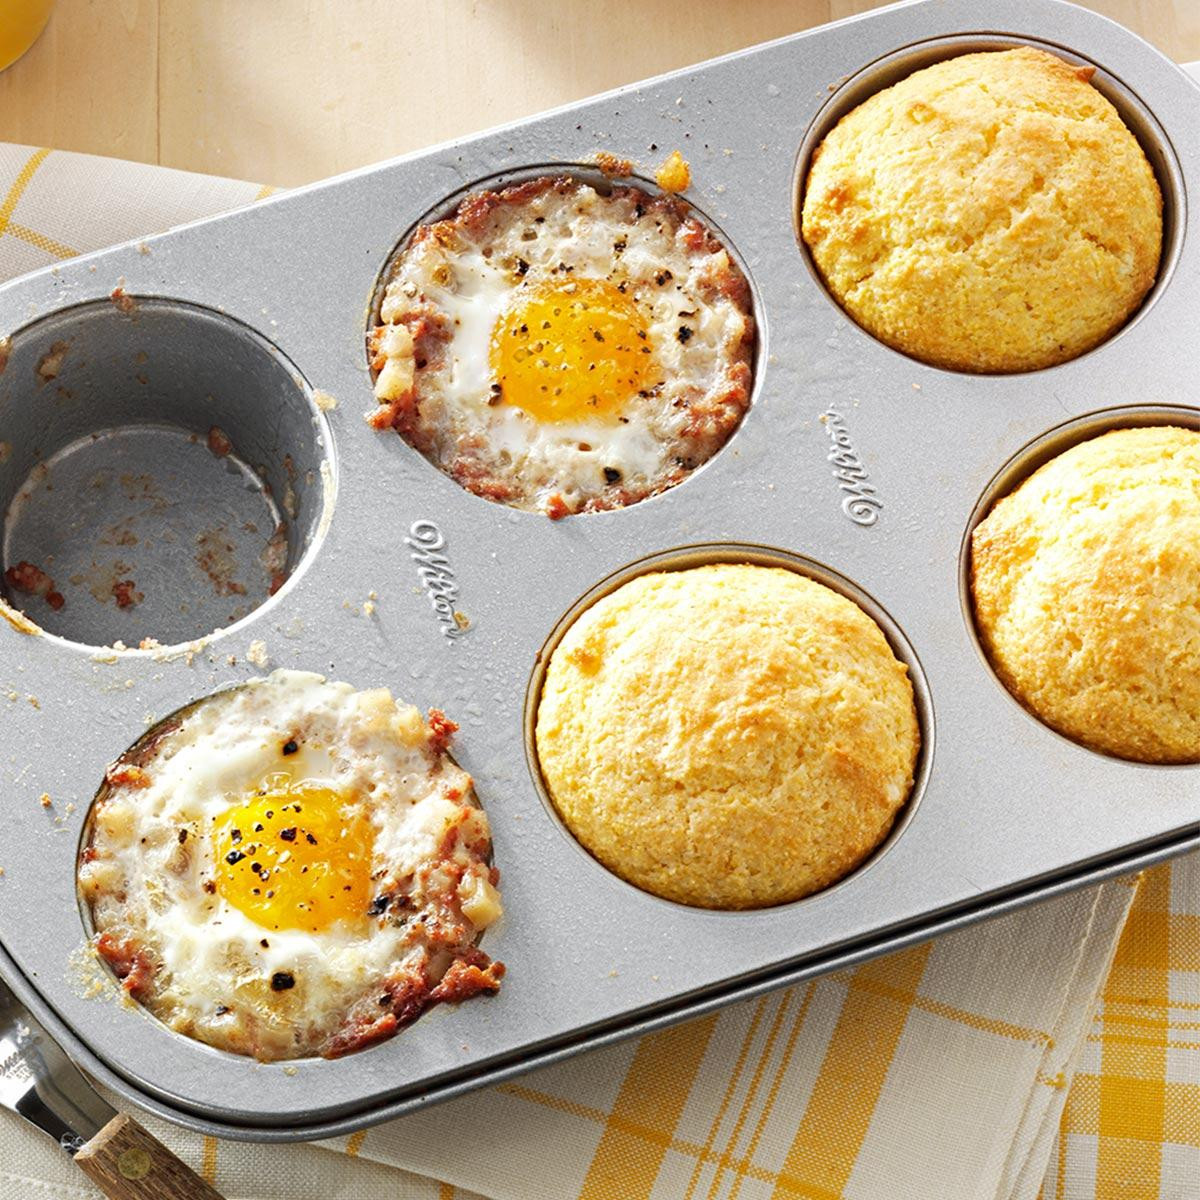 Breakfast To Go Recipes  Meal in a Muffin Pan Recipe